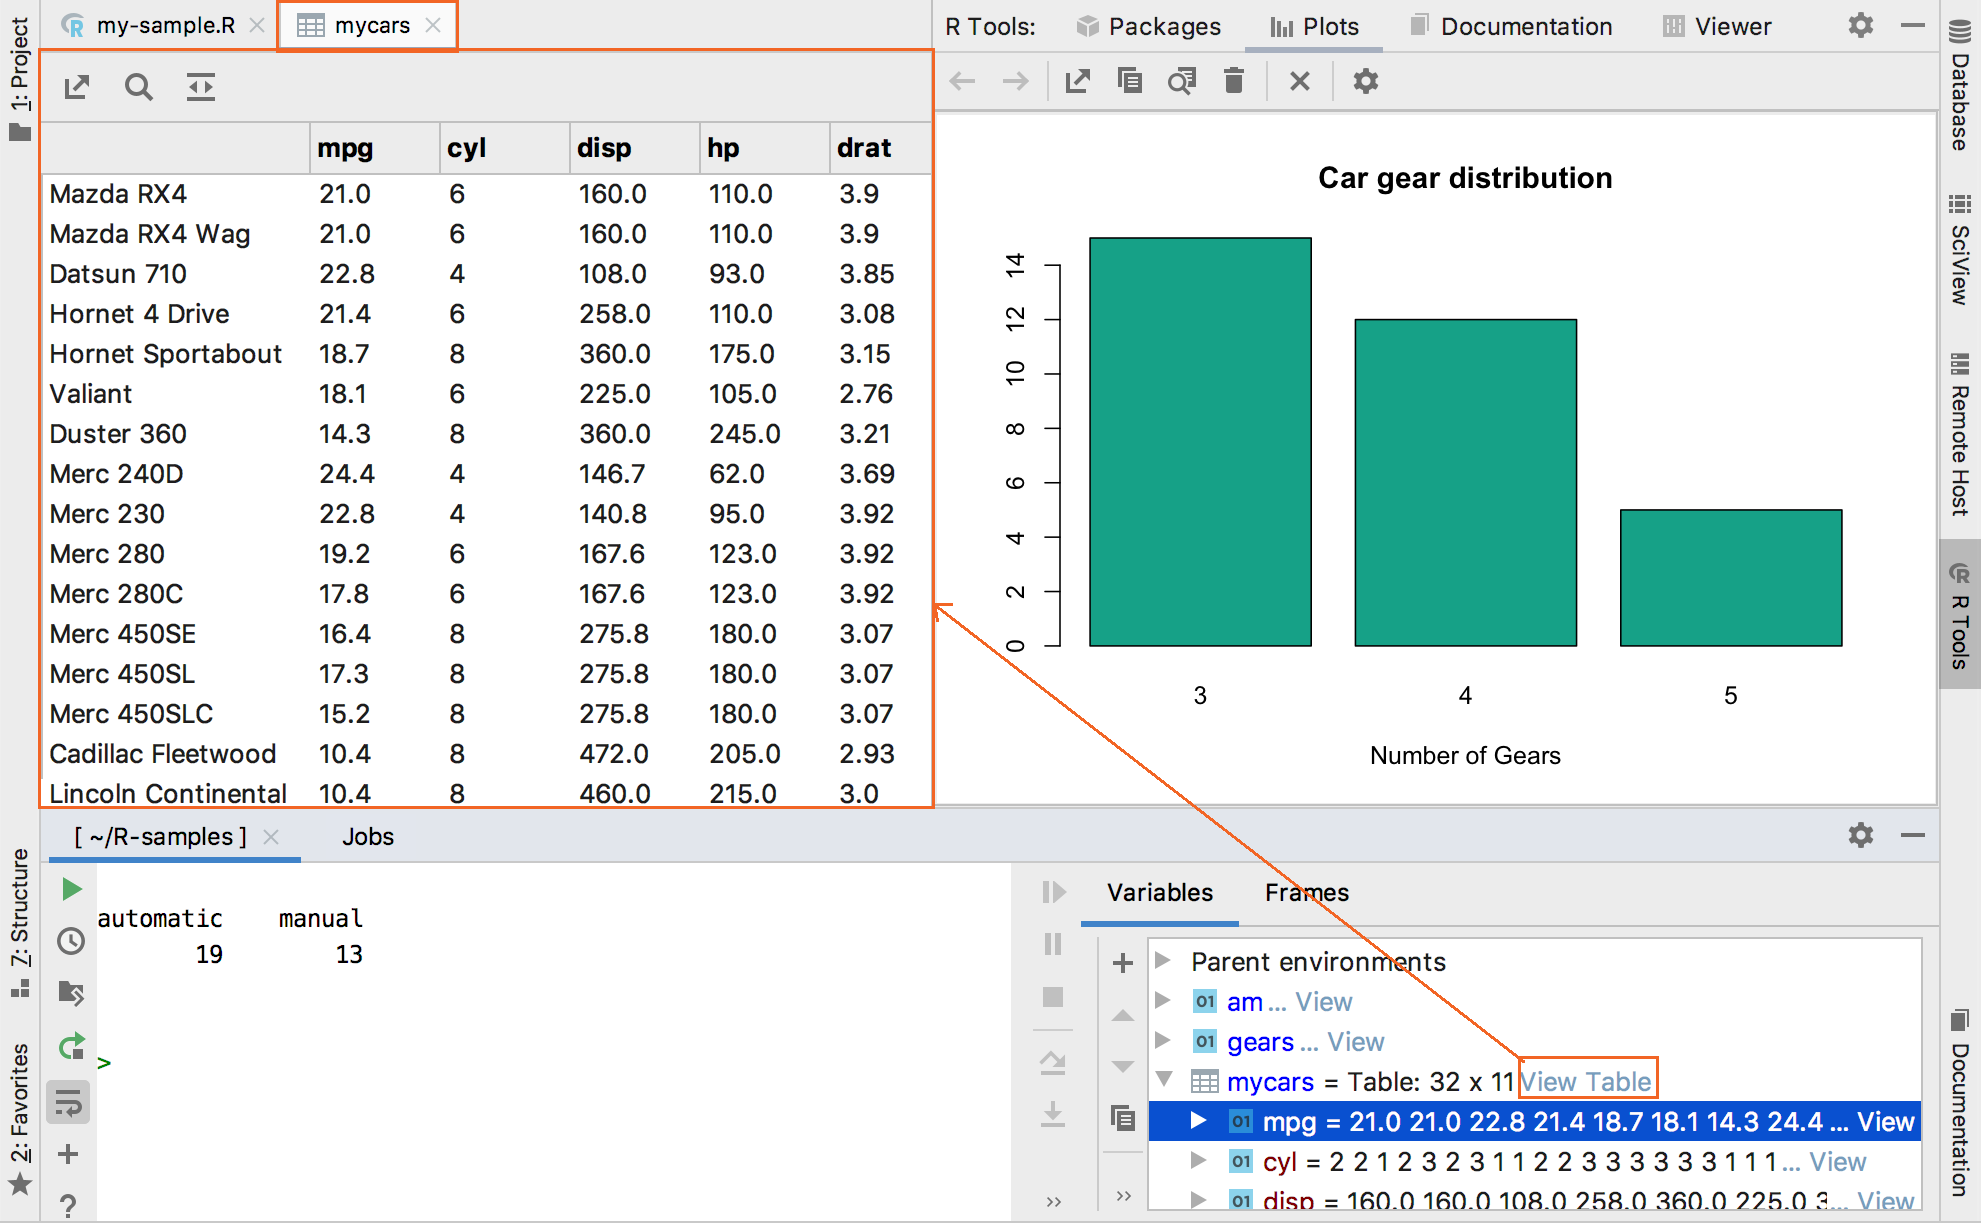 Previewing data in the Table View